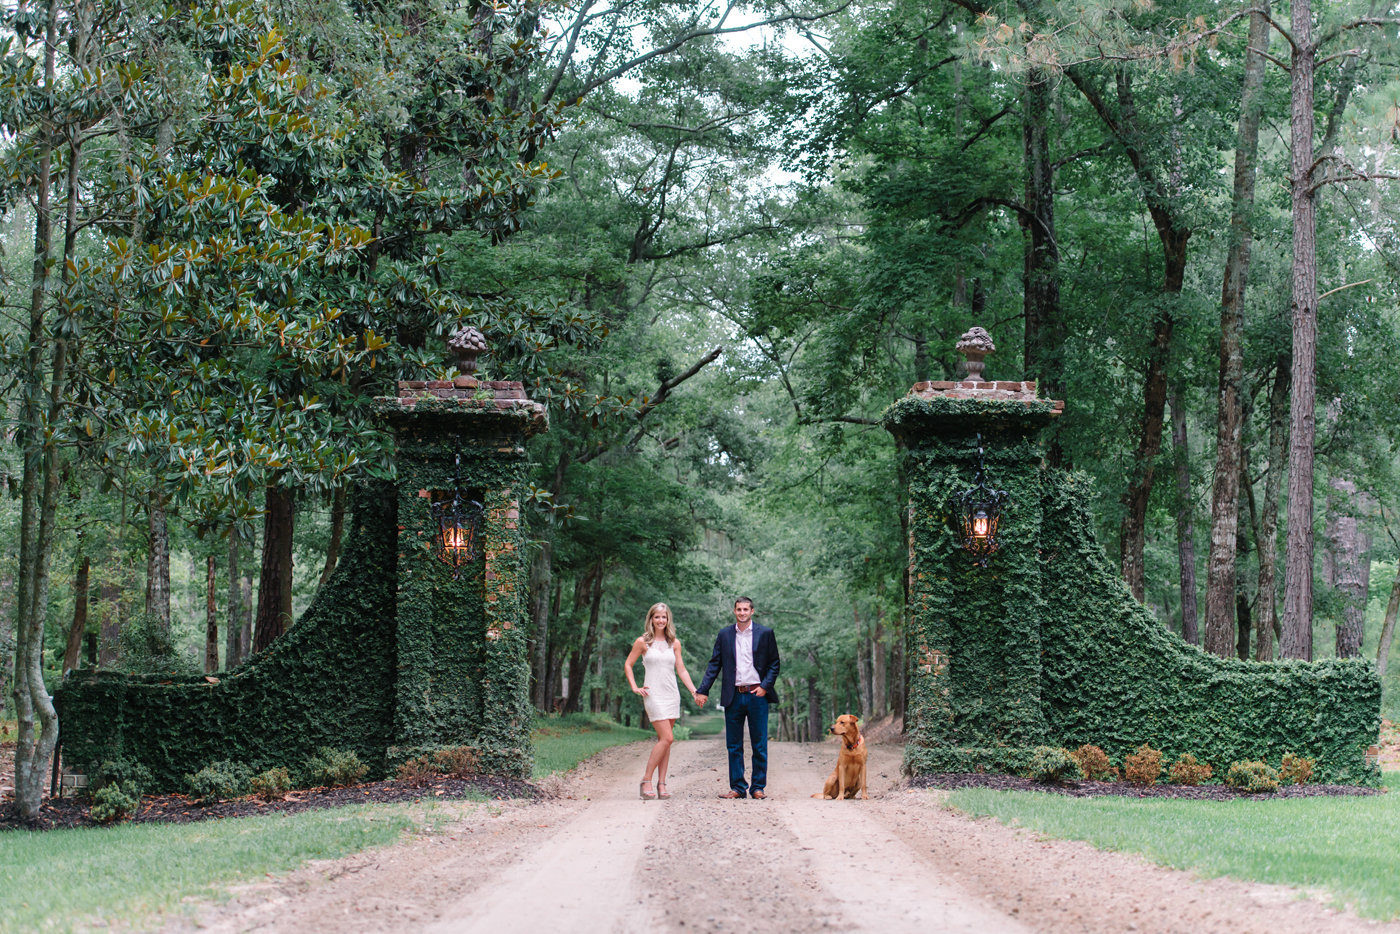 Unique Locations for engagement photography - Plantations in Georgetown, SC